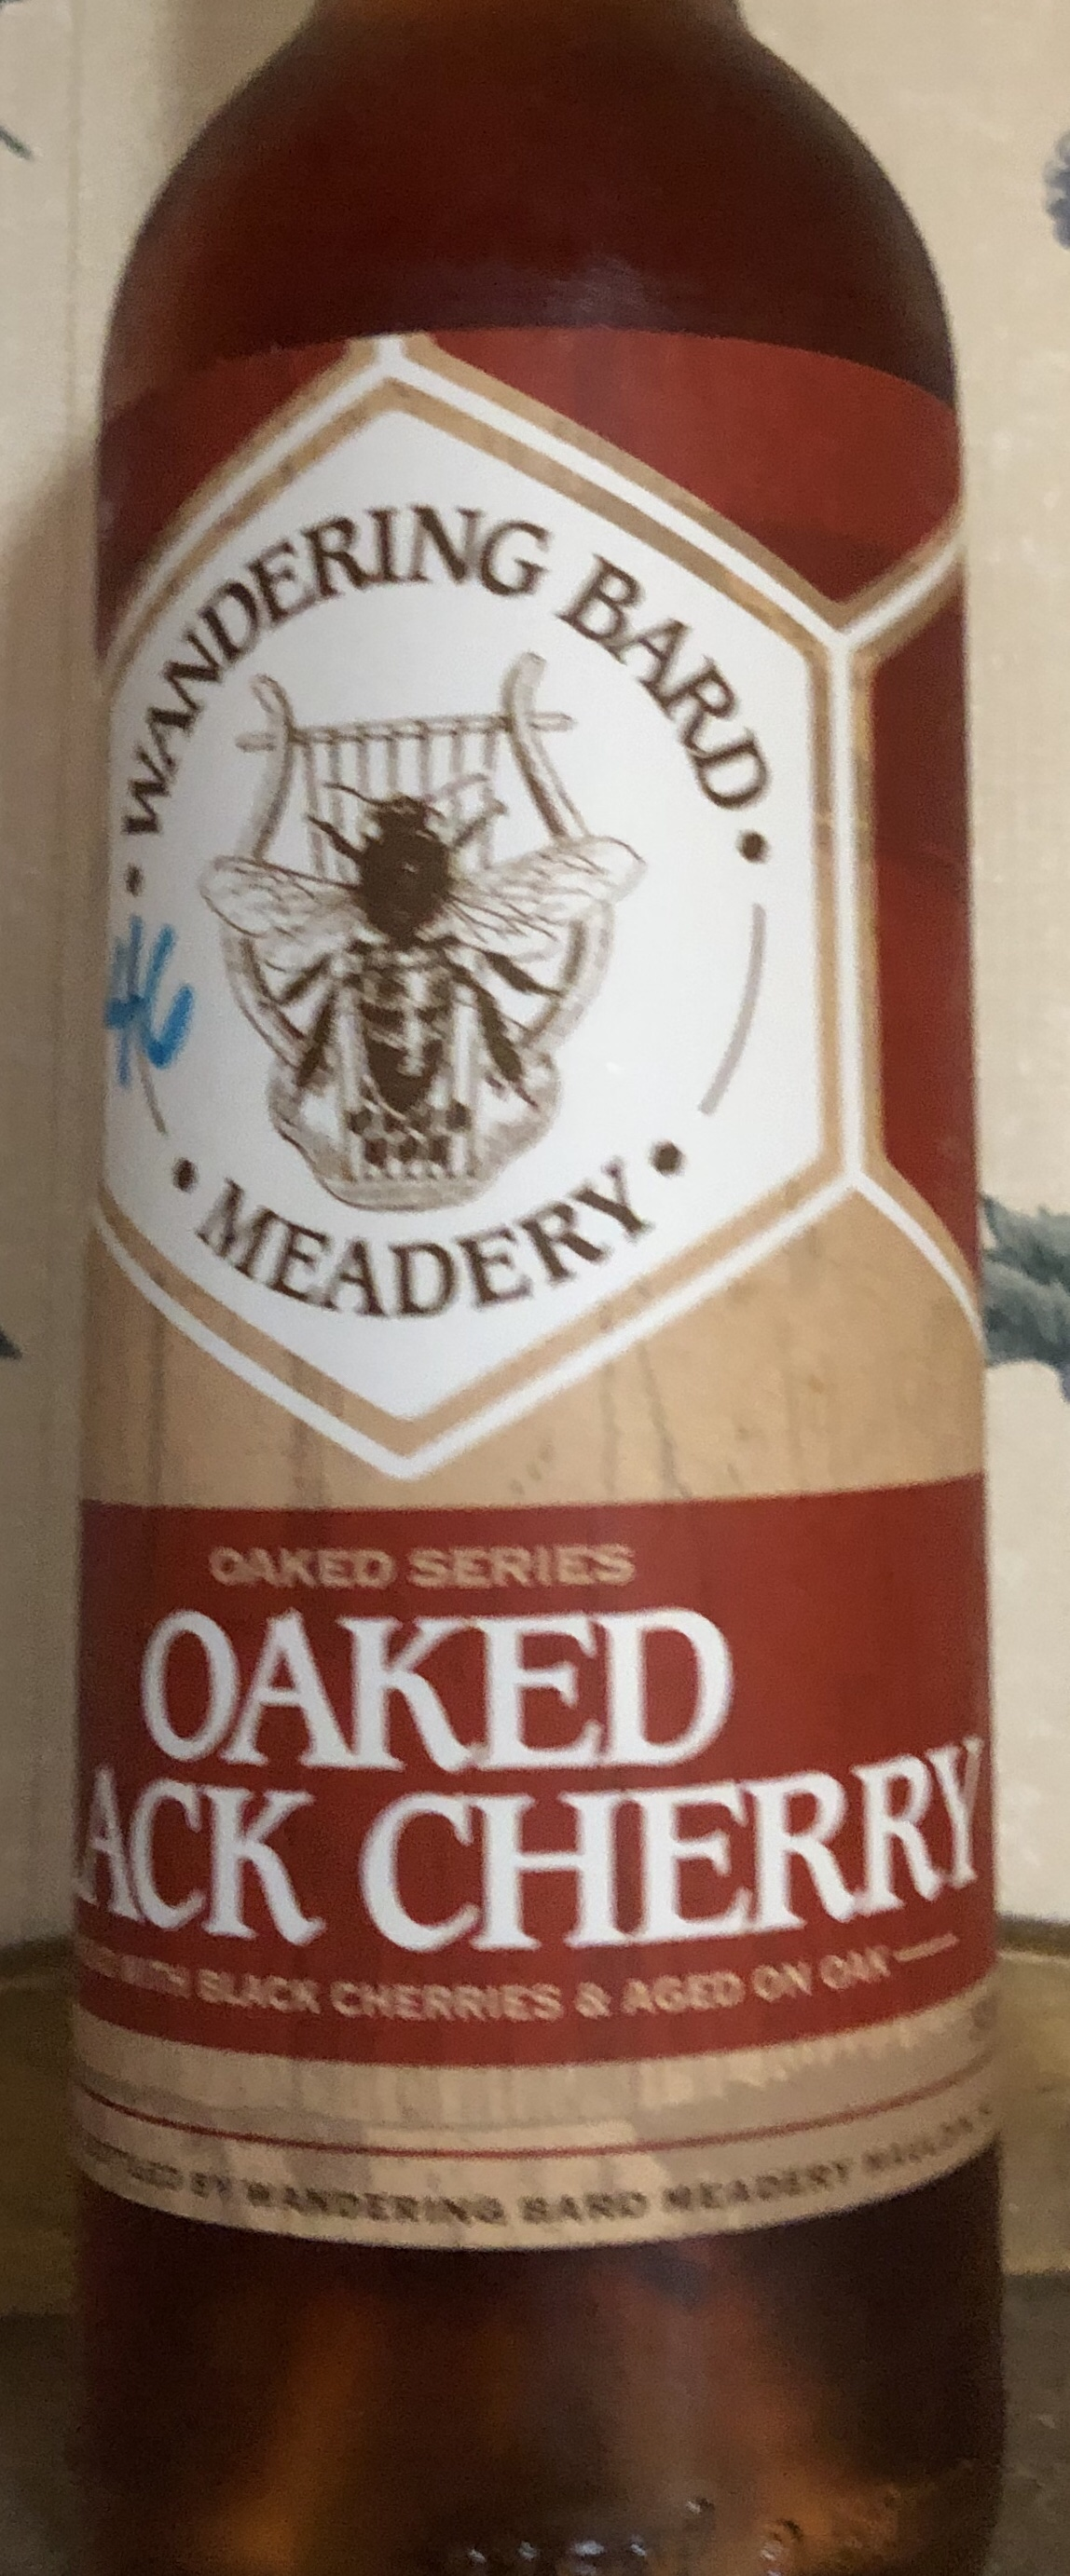 Oaked Black Cherry – Wandering Bard Meadery